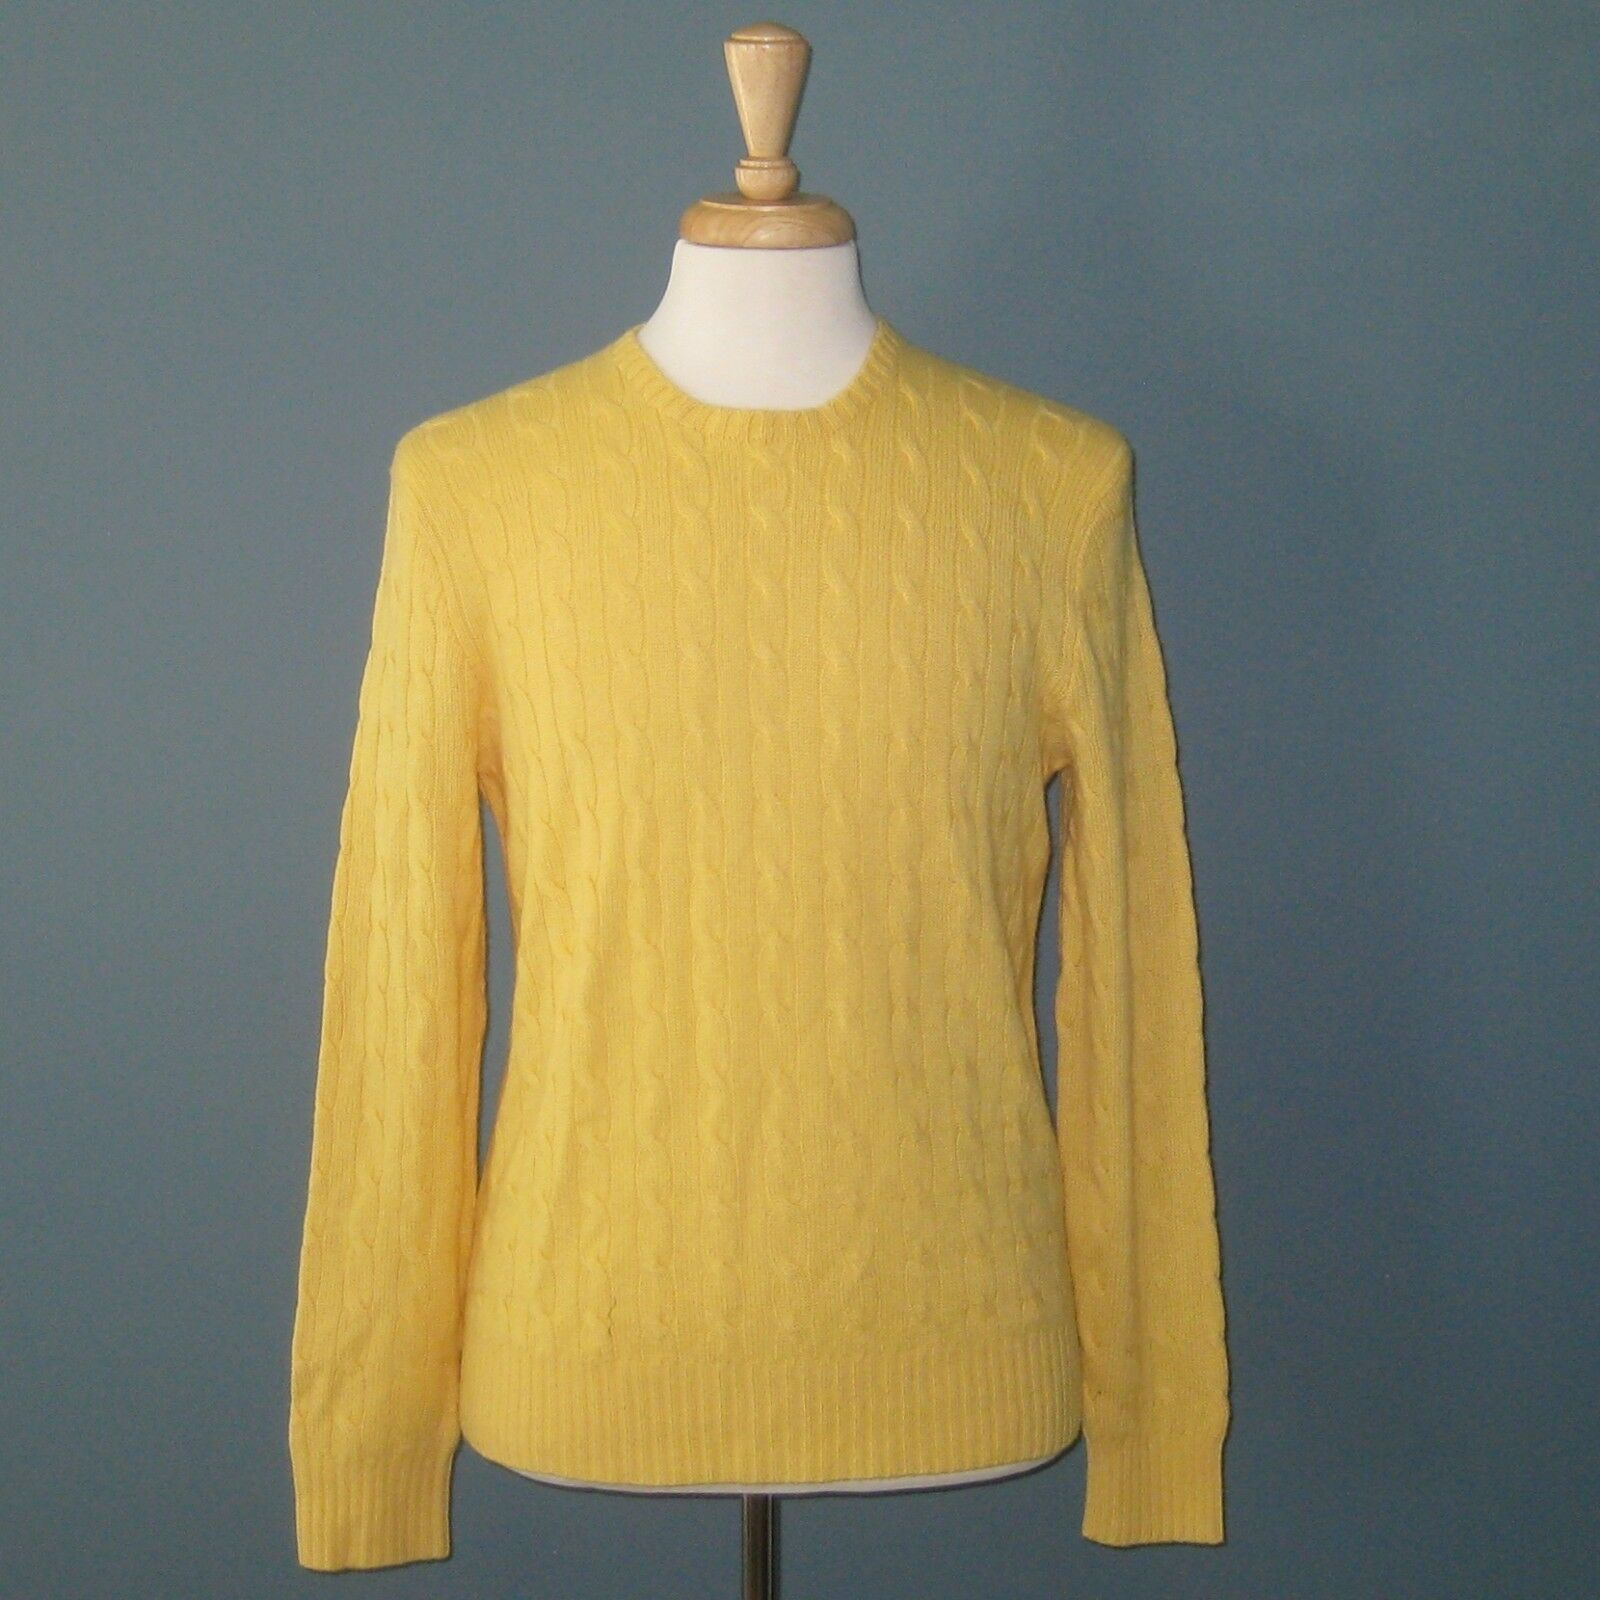 NWT Polo Ralph Lauren Yellow 100% Cashmere Cable Knit L S Sweater -- L